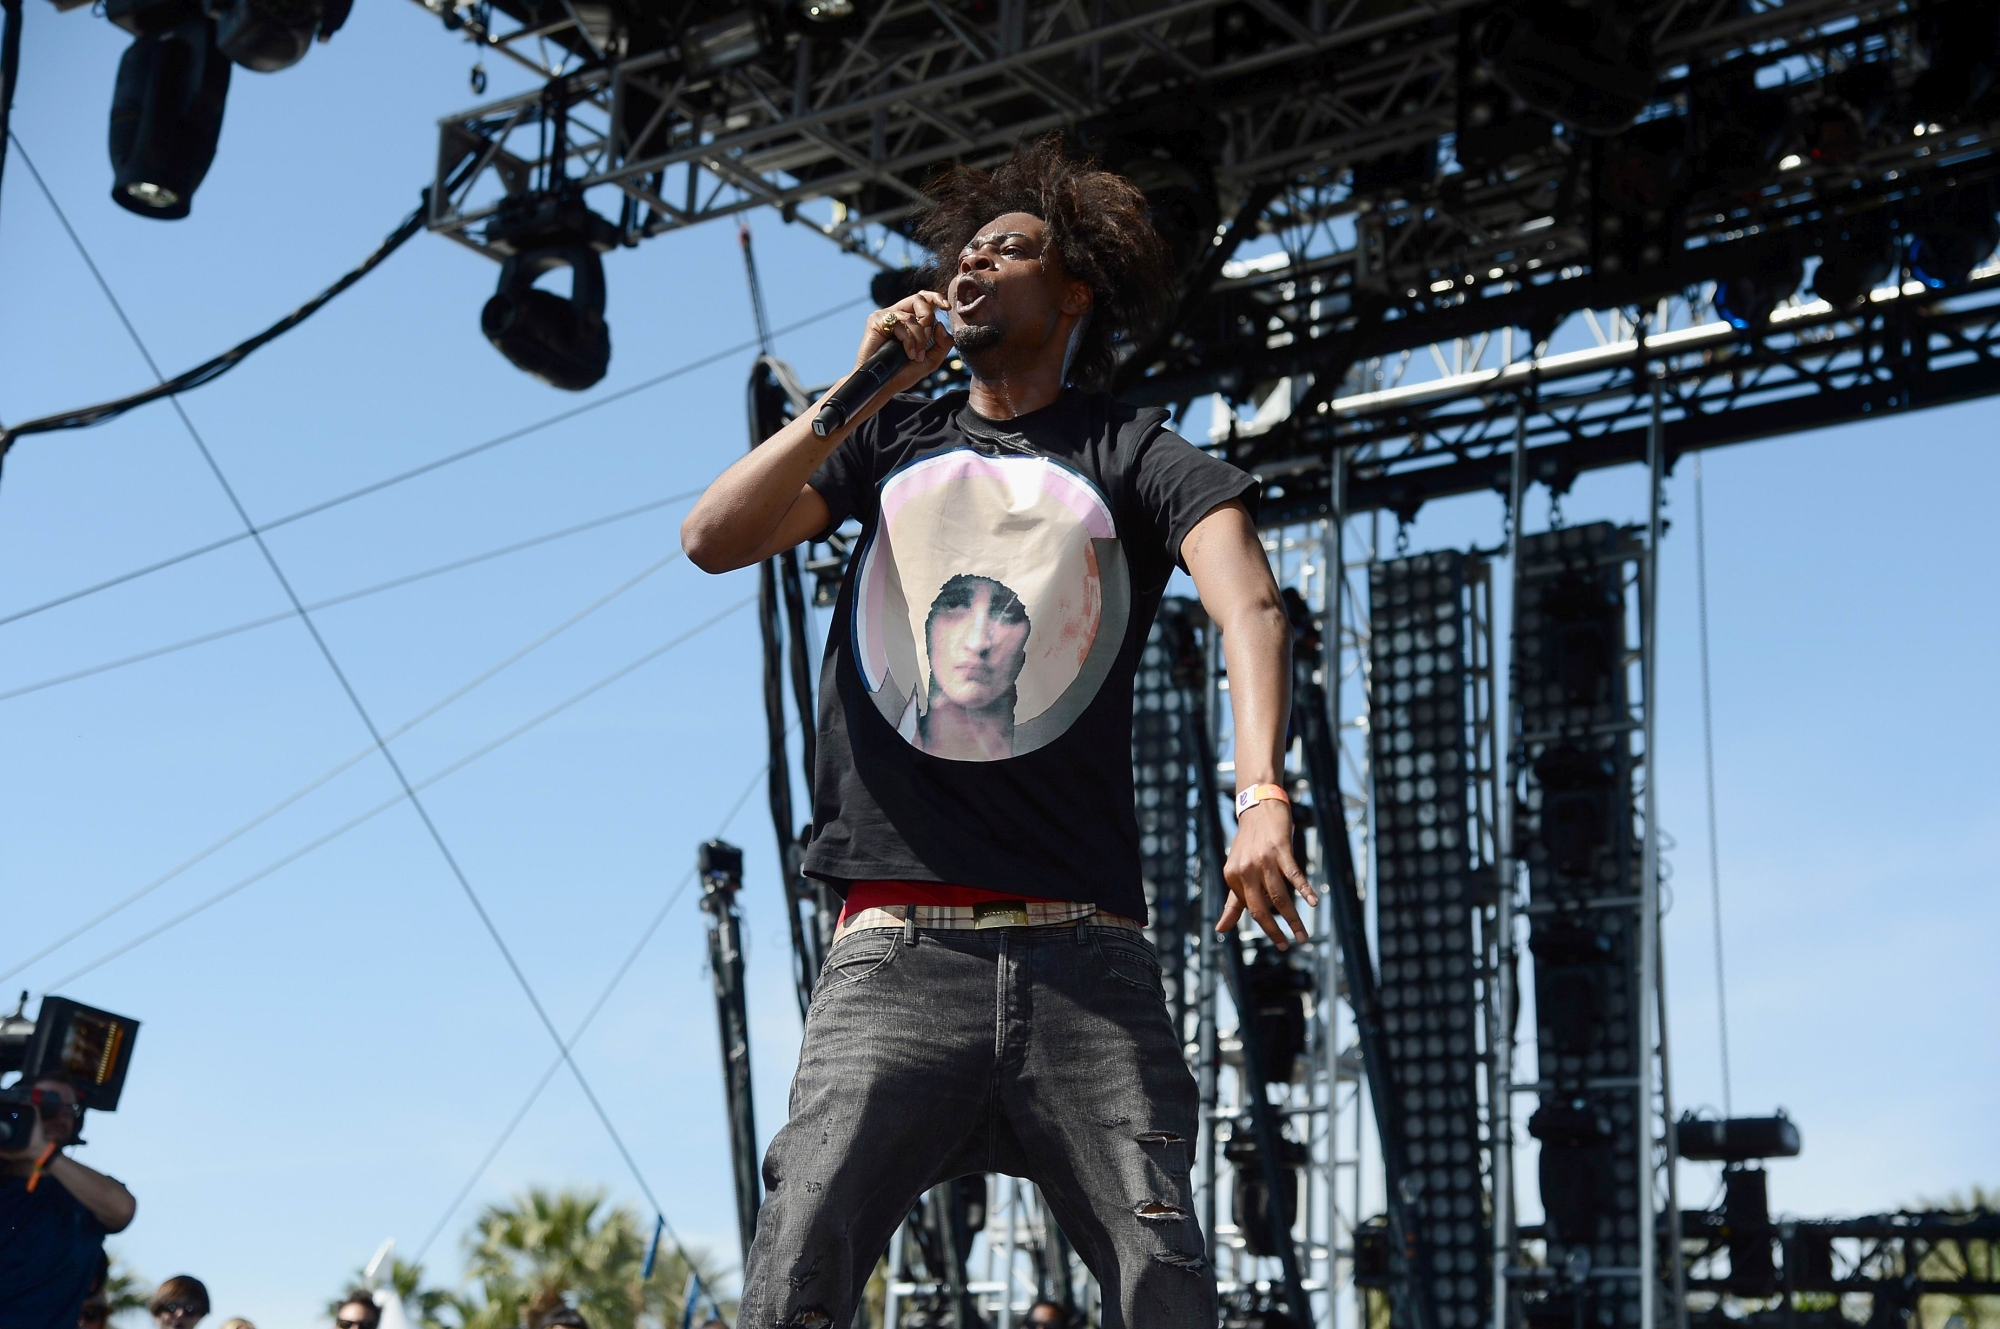 Critically-acclaimed rapper Danny Brown is among those appearing at Origin NYE, but where?